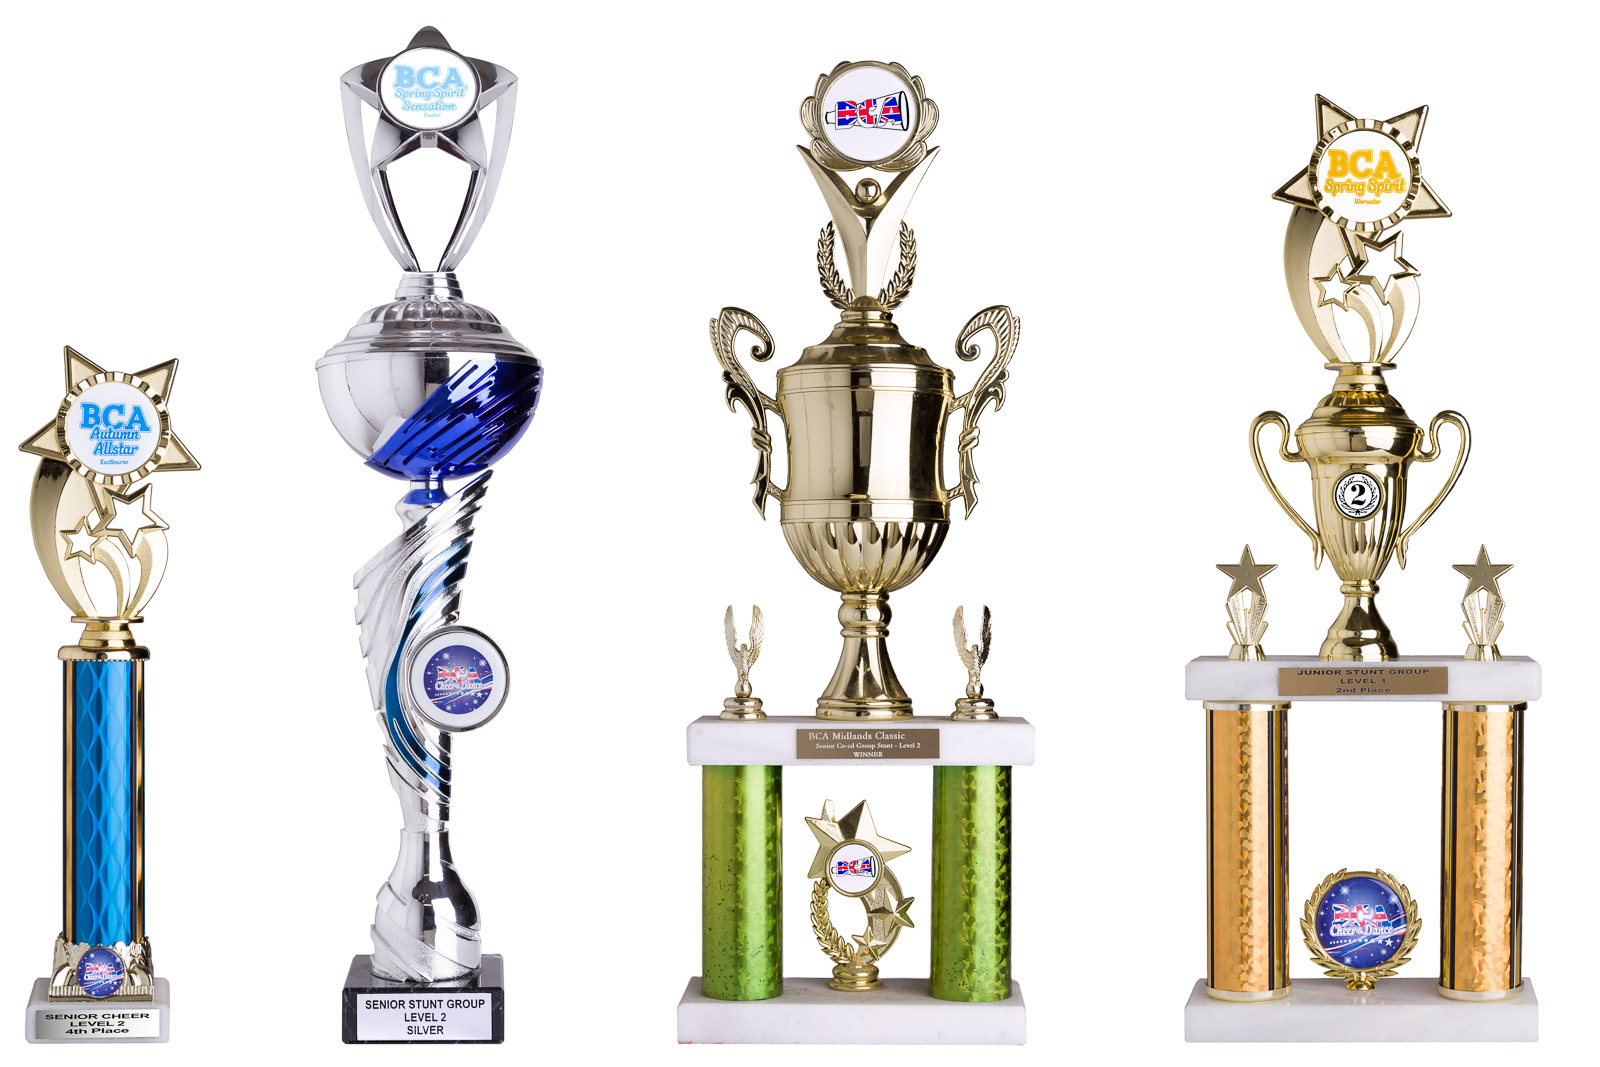 british cheerleader association winners trophies on white background